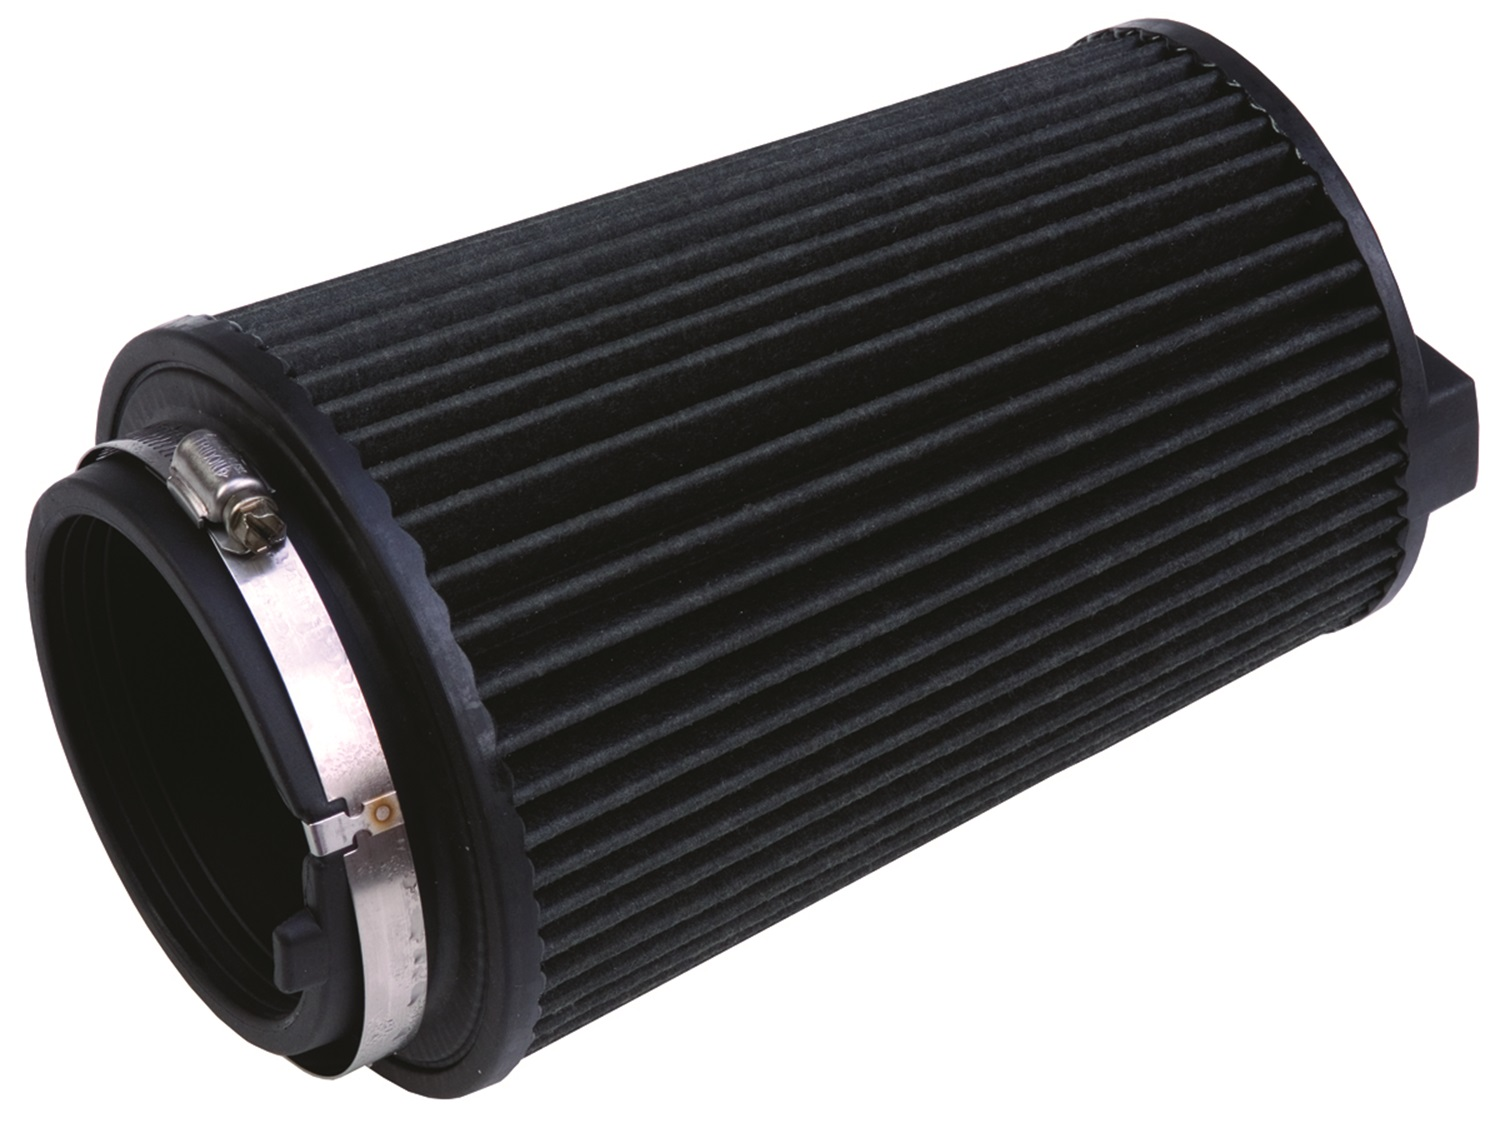 Ford Racing M-9601-B Air Filter Element Fits 08-09 Mustang M-9601-B